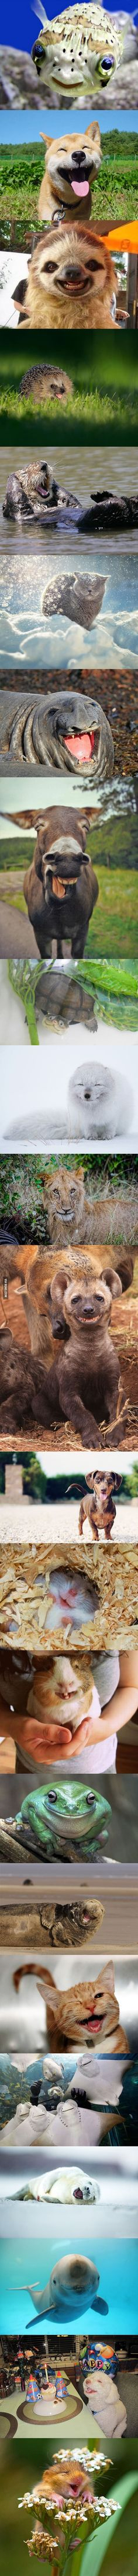 brighten up your day! The happiest animals in the world. ..